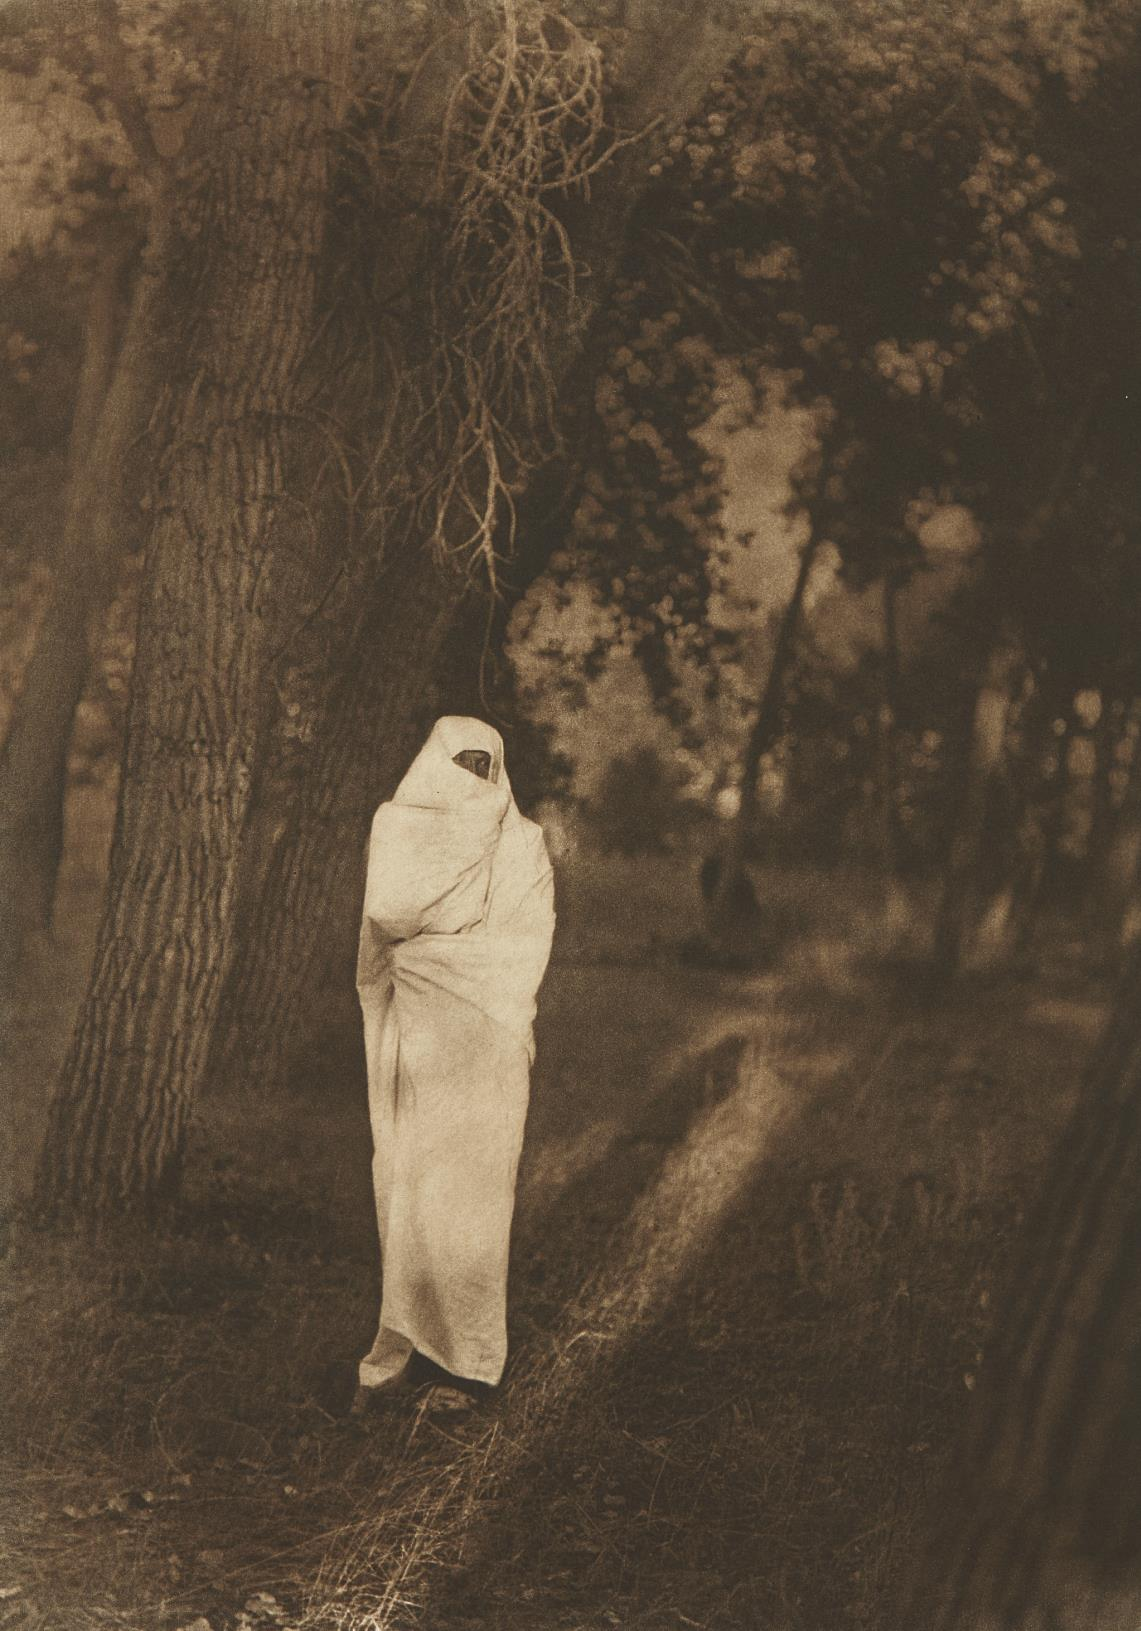 Edward S. Curtis-Waiting in the Forest, Cheyenne-1910